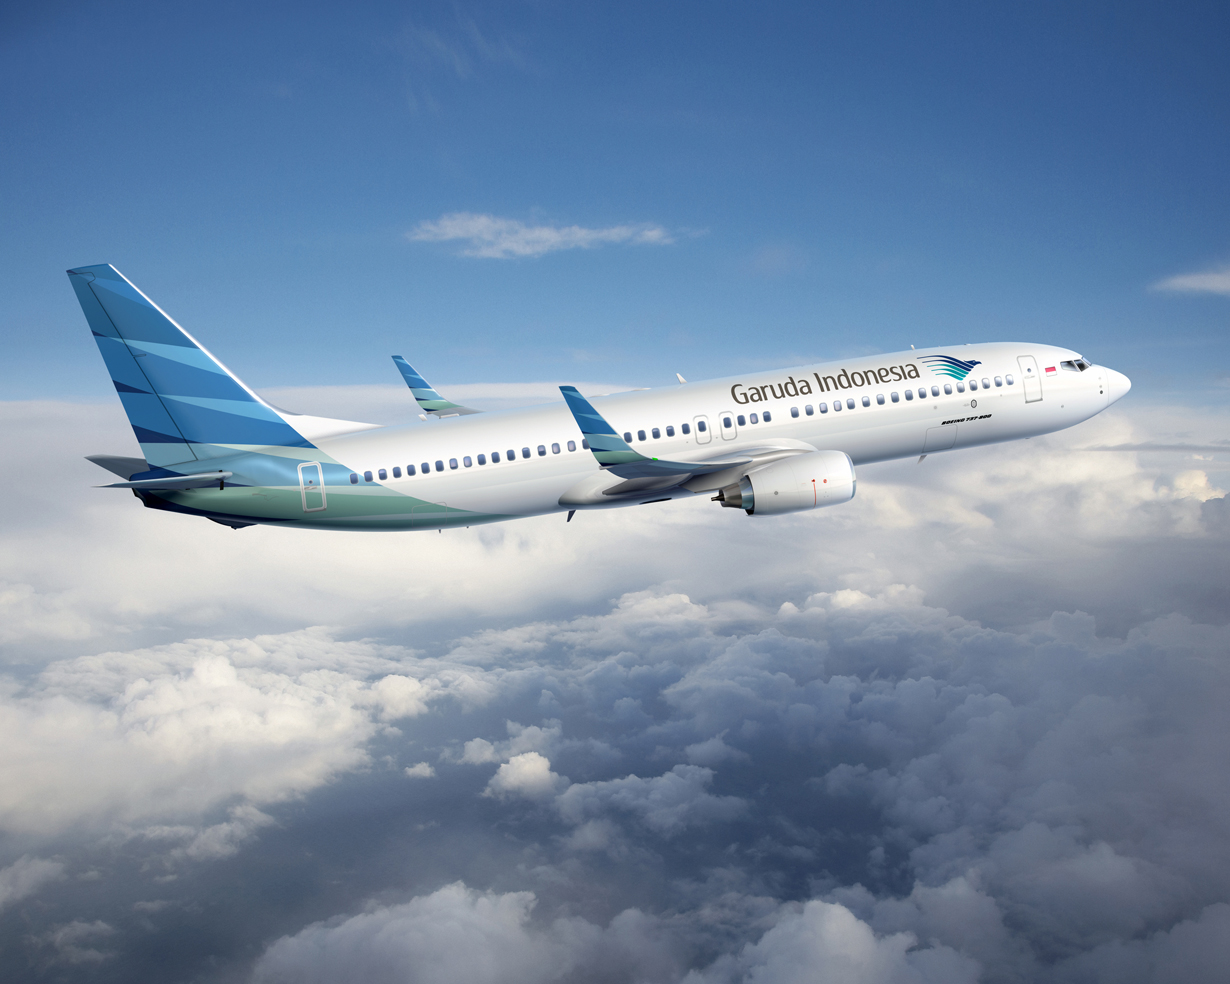 Harga Lion Air Promo Tiket Pesawat Garuda Indonesia Offers Dedicated Singapore Service